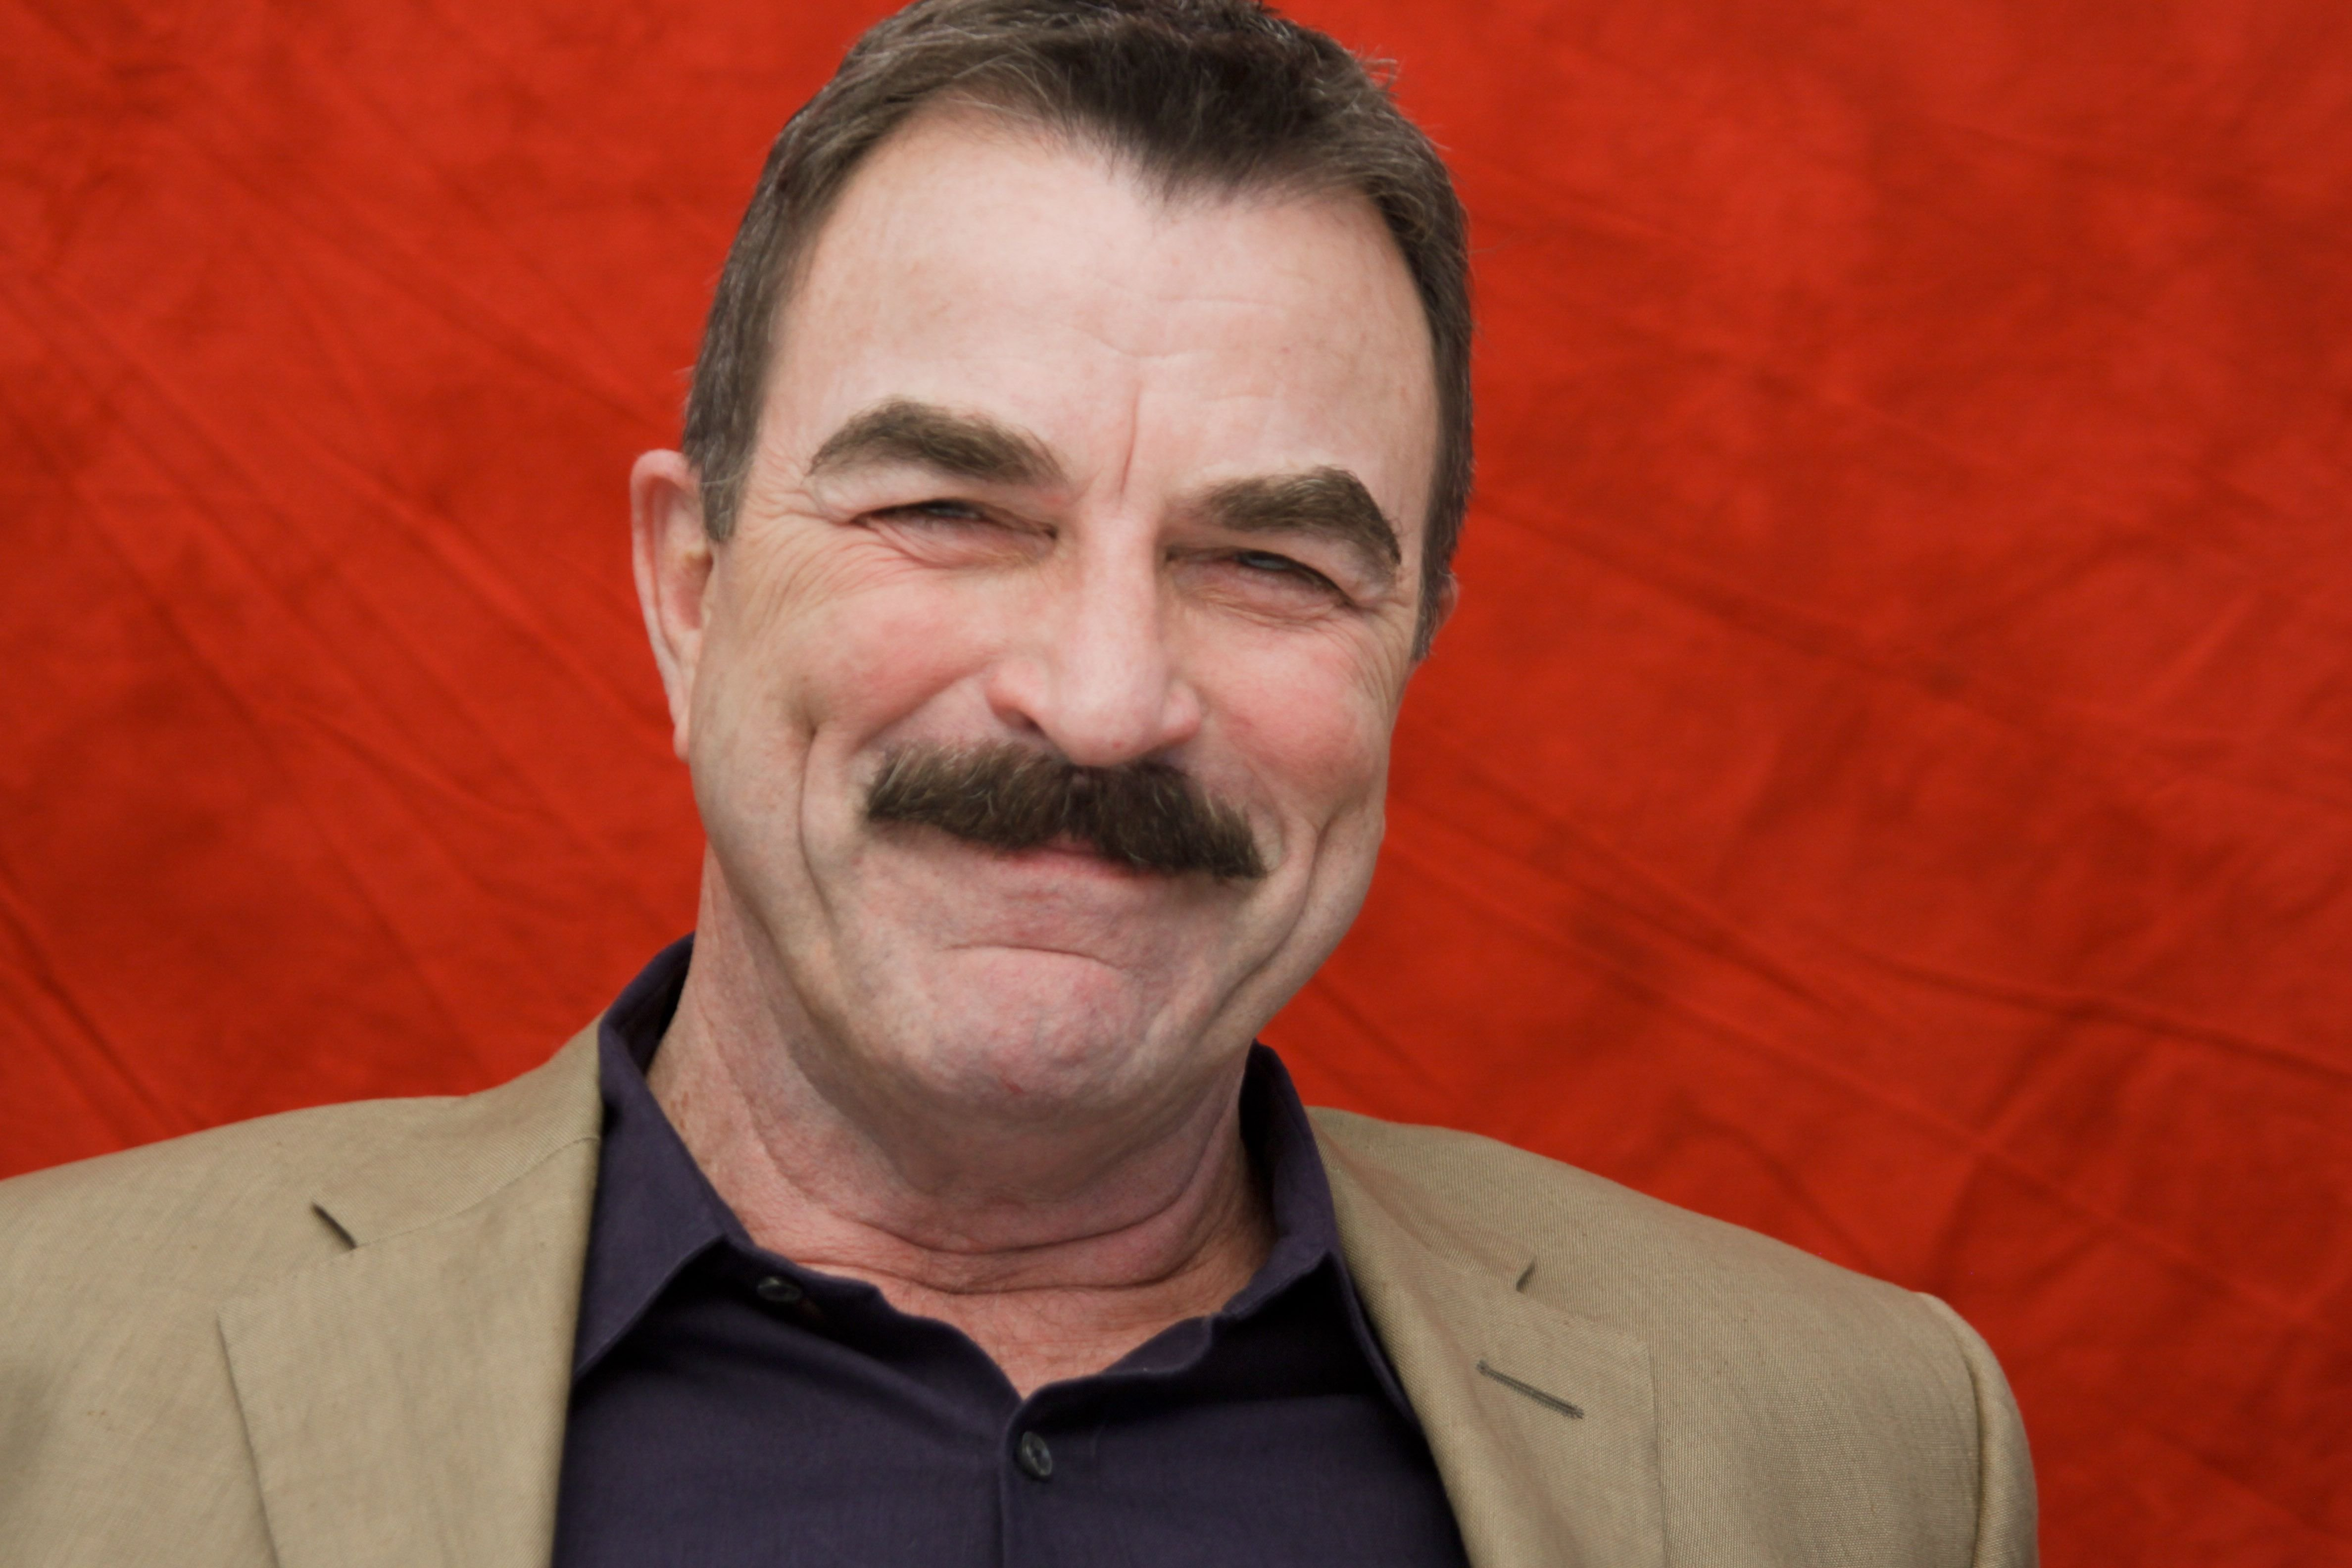 Tom Selleck poses for a photo during a portrait session in West Hollywood, California on August 16, 2010 | Photo: Getty Images